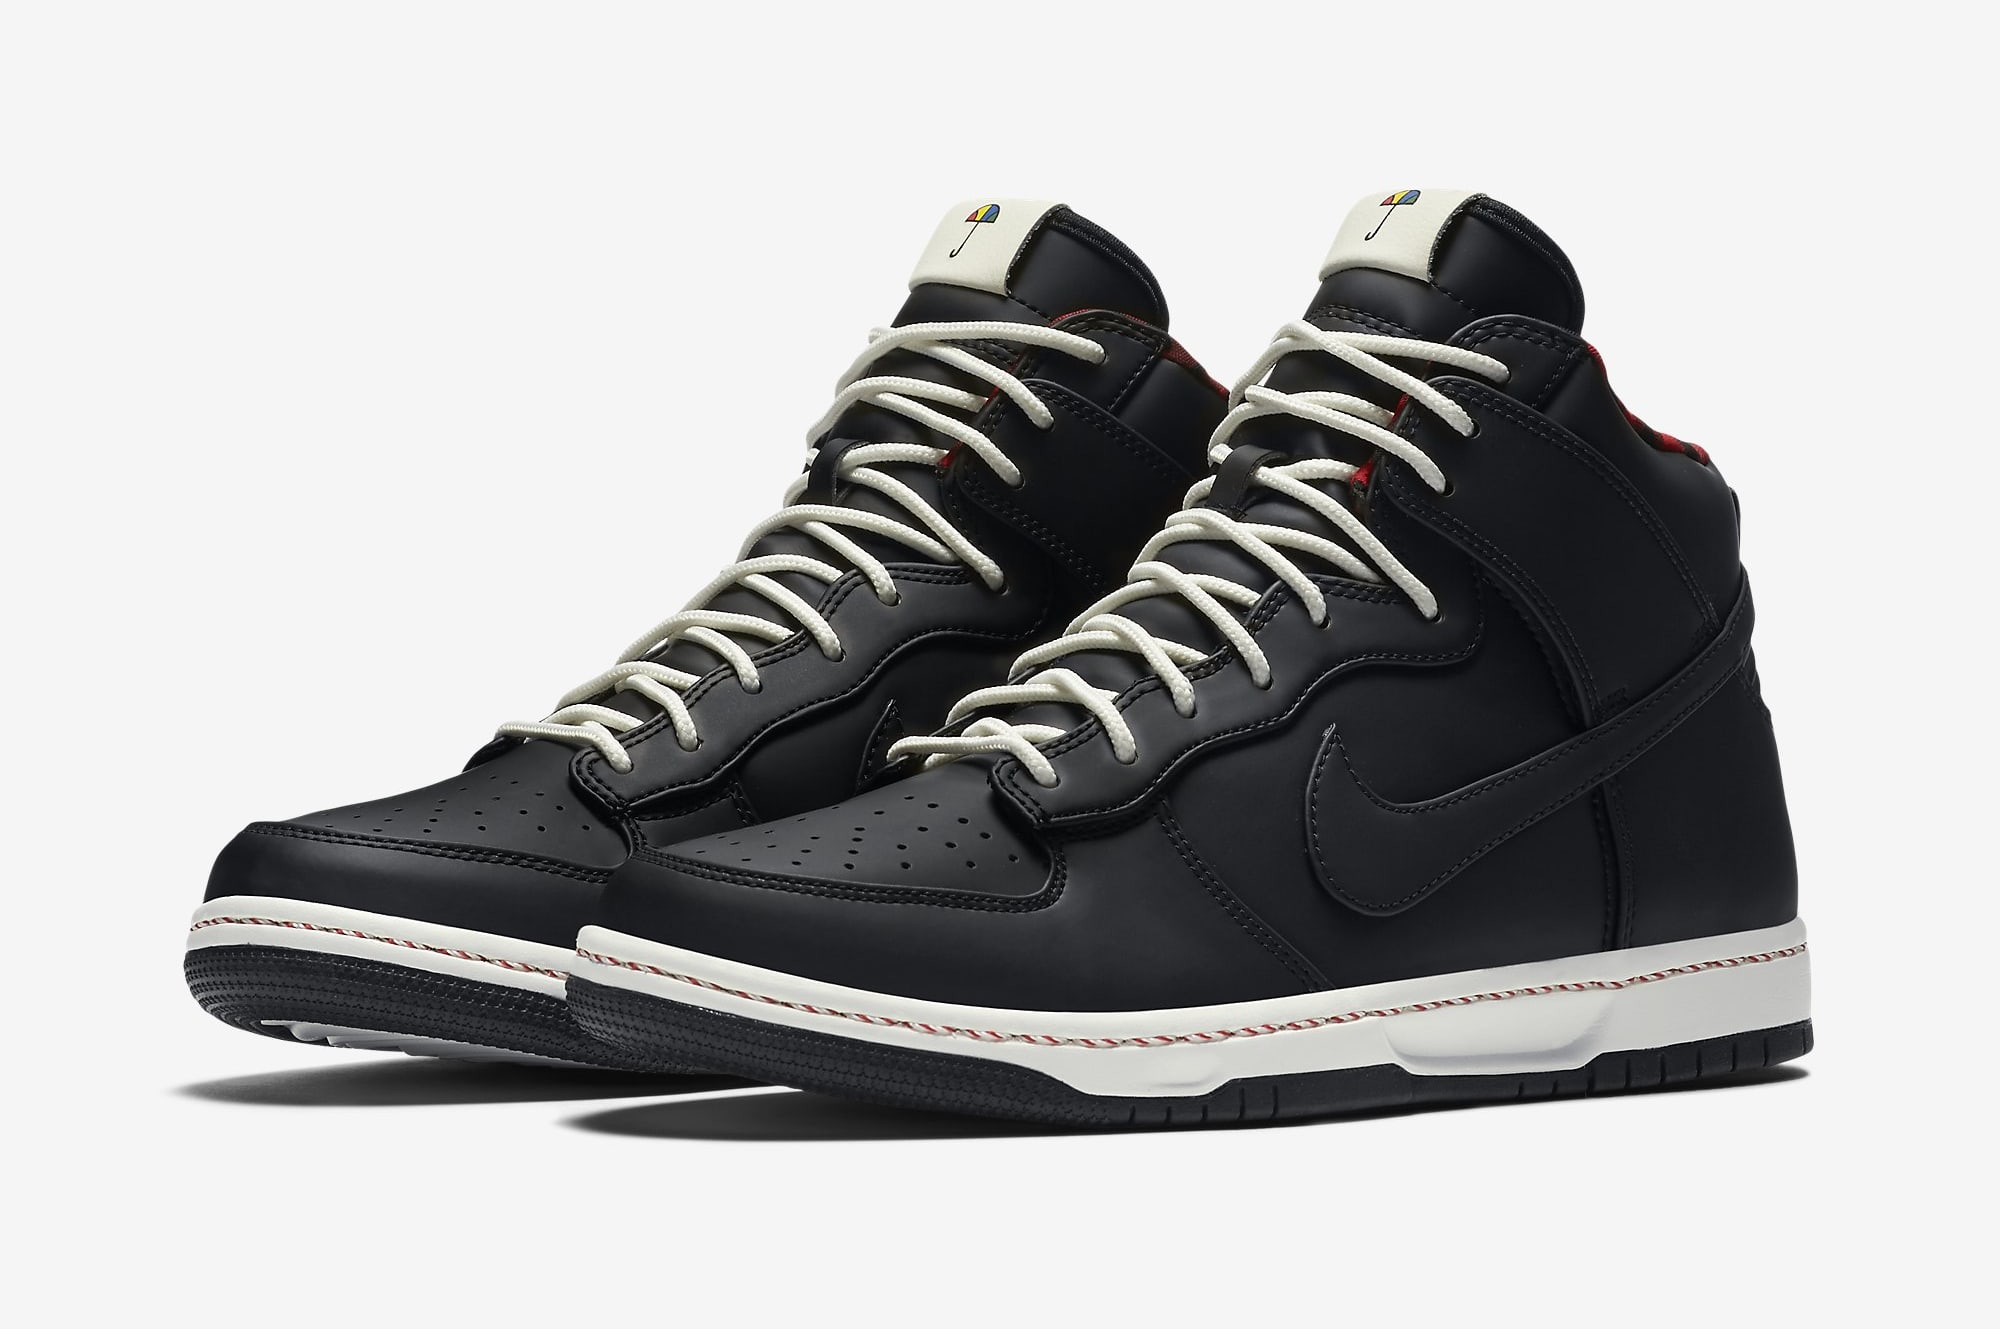 SB DUNK ANKLE SHOES BLACK WHITE SNEAKER